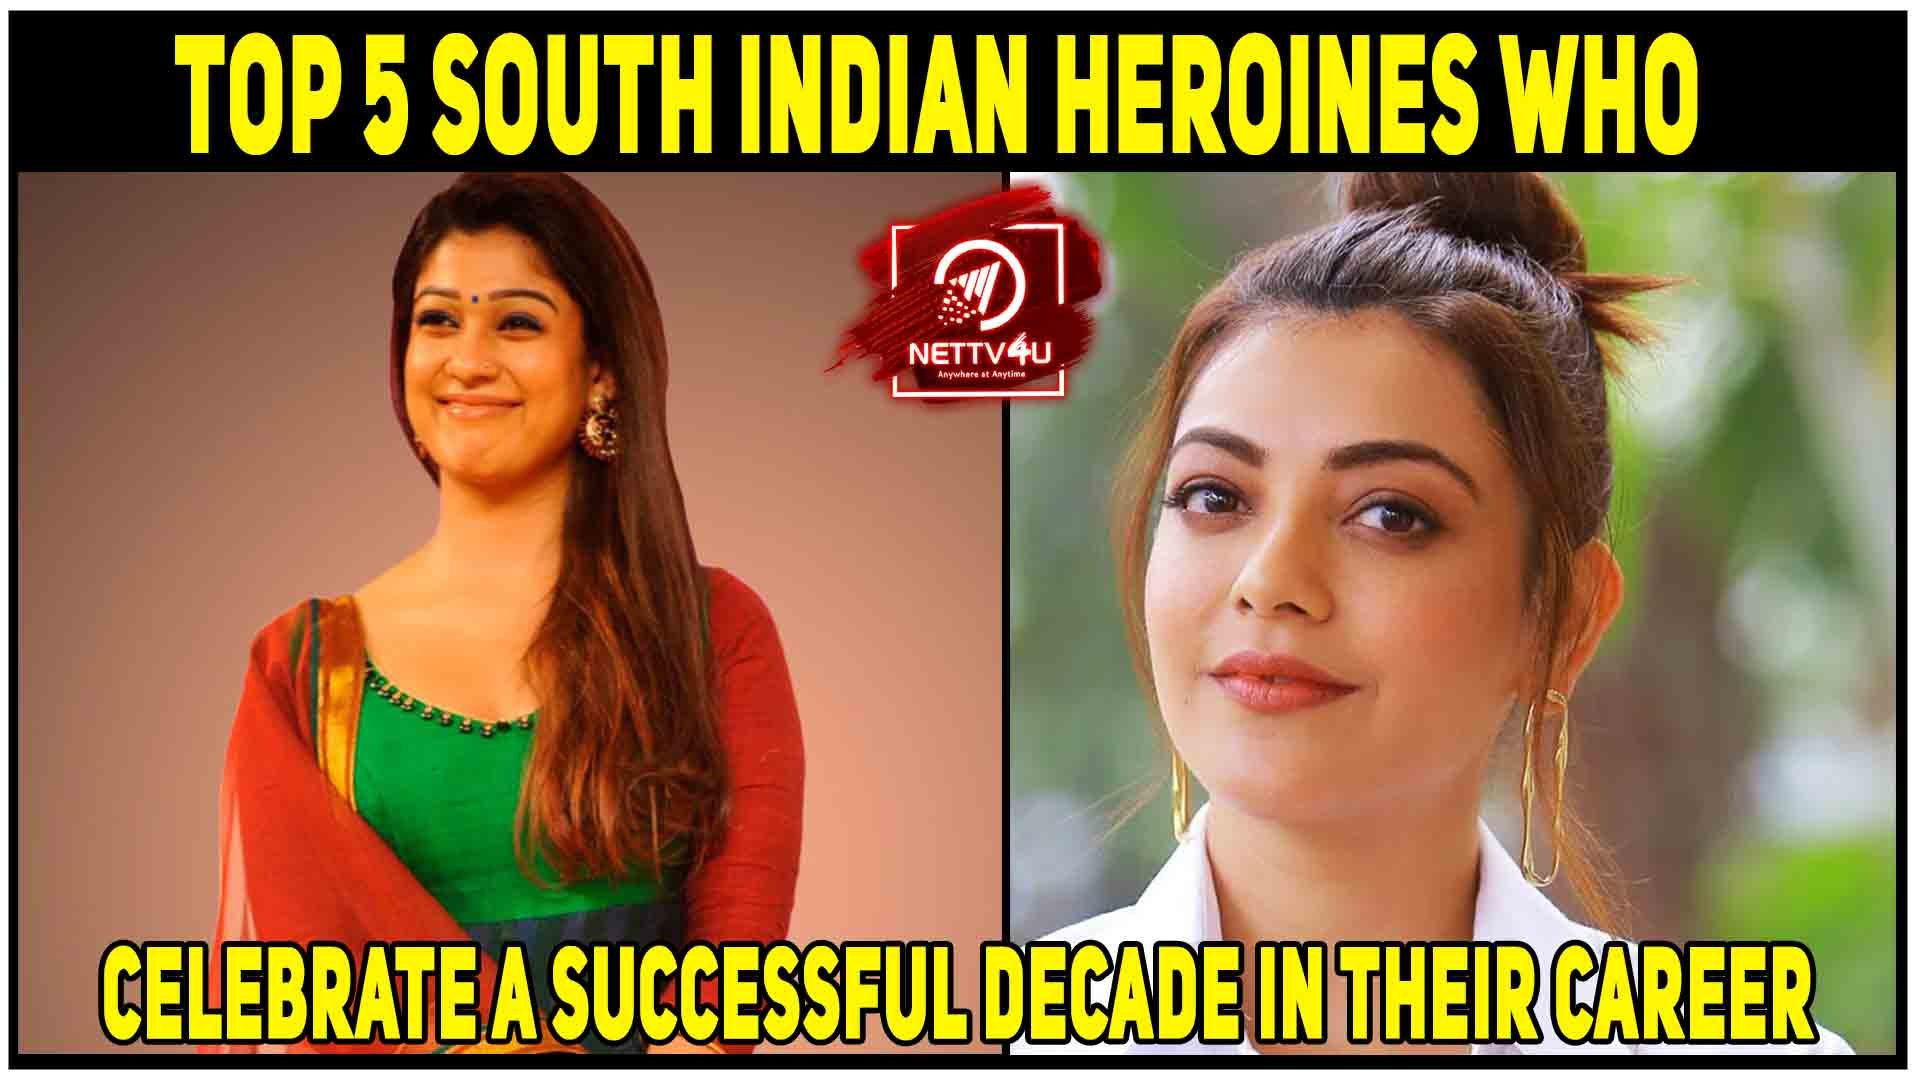 Top 5 South Indian Heroines Who Celebrate A Successful Decade In Their Career Latest Articles Nettv4u